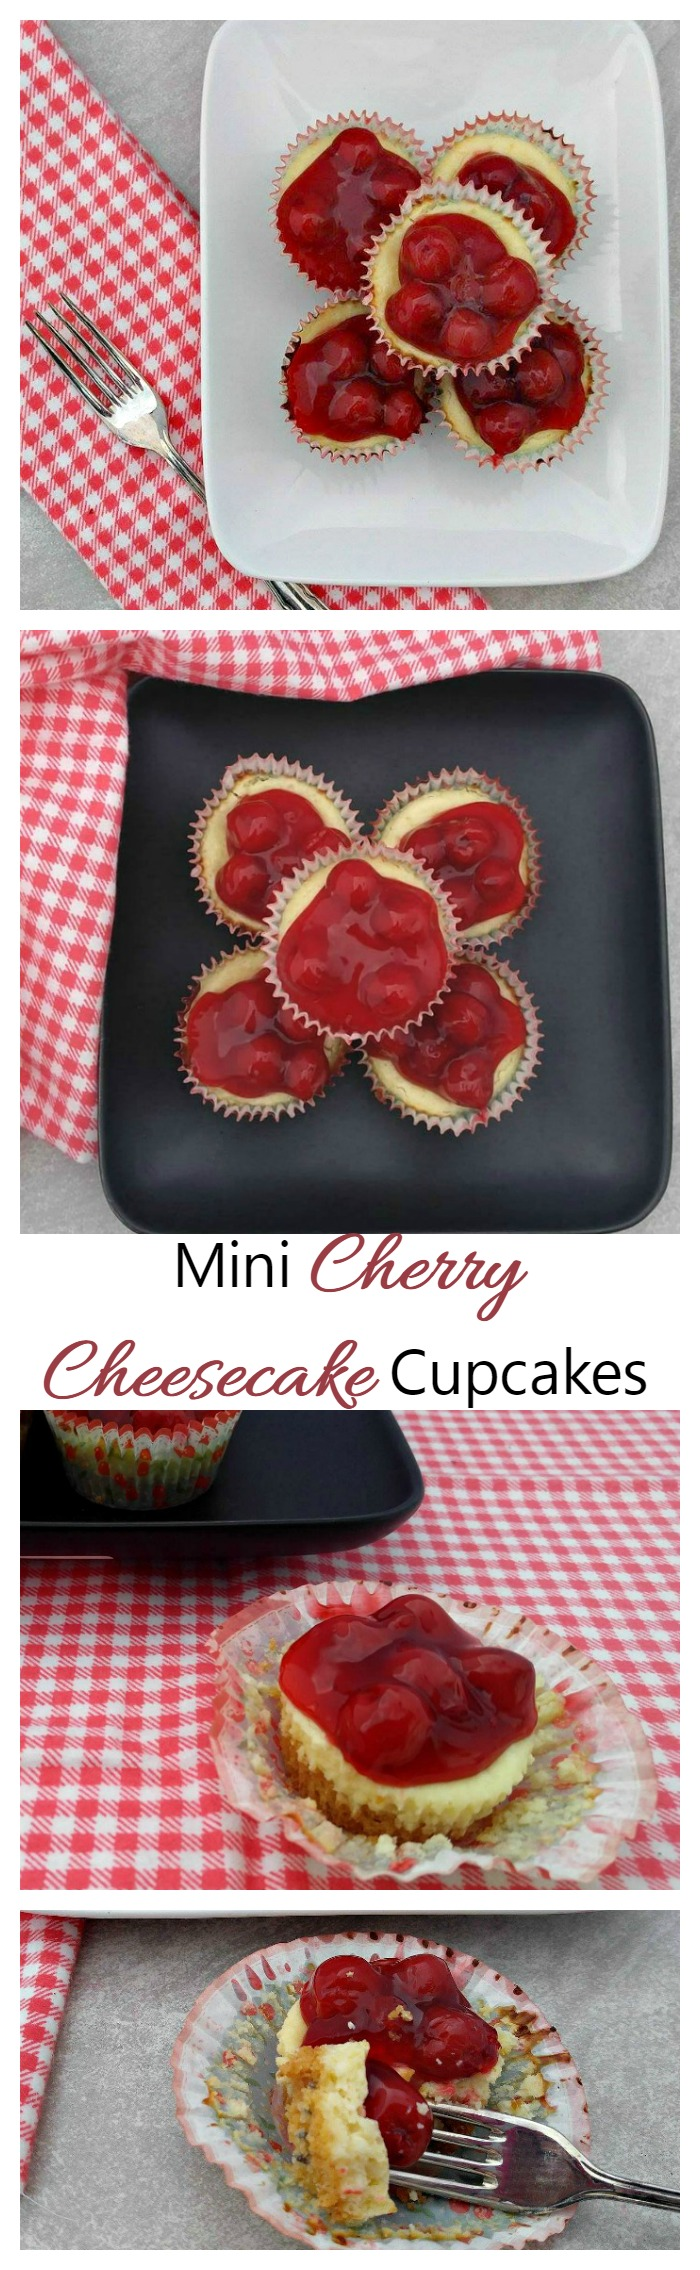 These mini cherry cheesecakes are easy to make, delicious to eat and a hit any time of the year. Why not make them for your holiday dessert table?